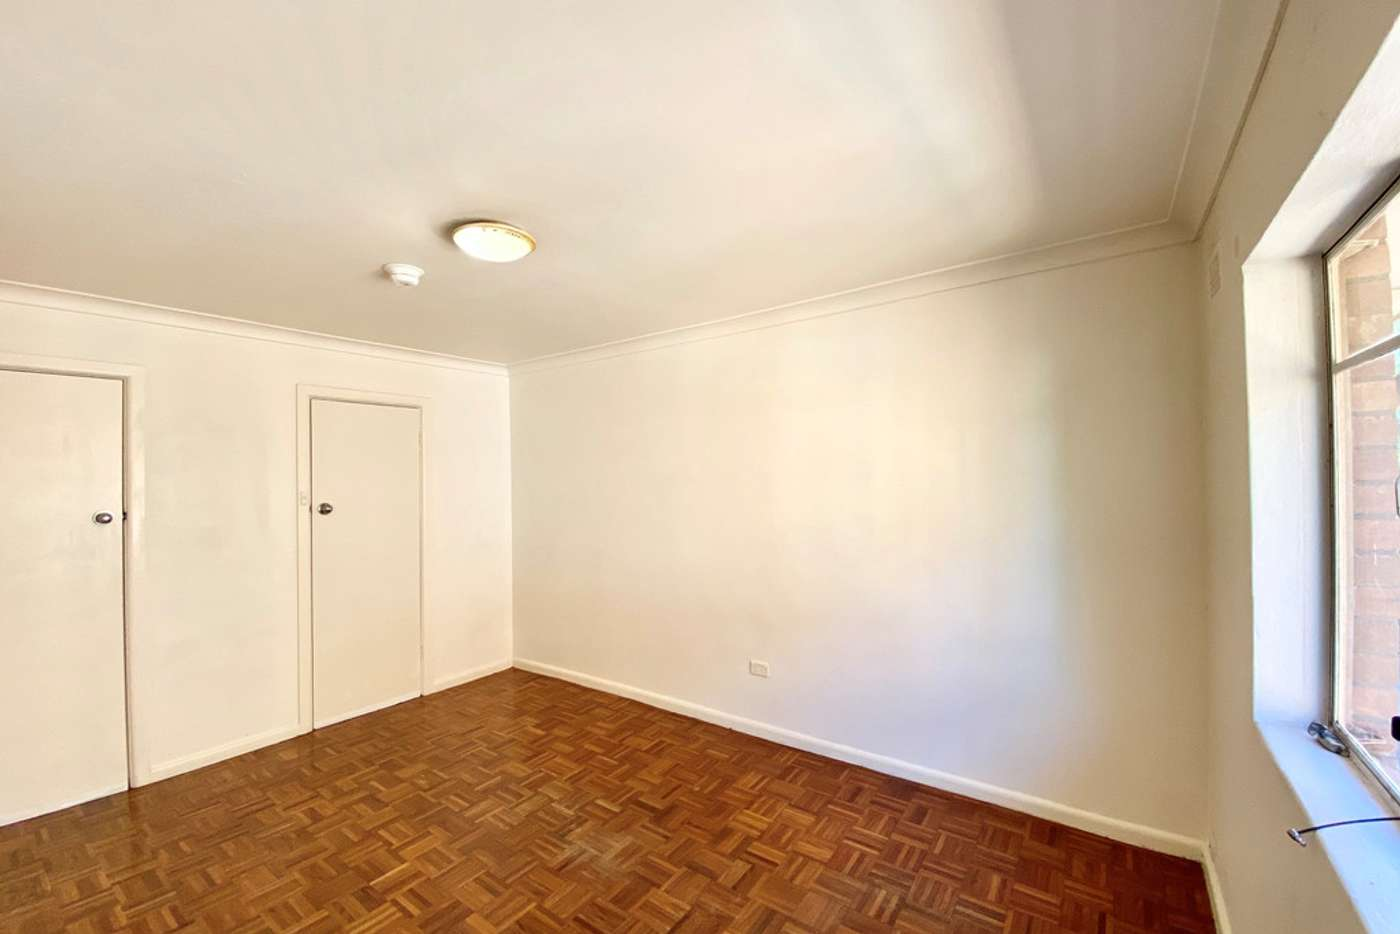 Main view of Homely studio listing, 11/30-32 Bucknell Street, Newtown NSW 2042